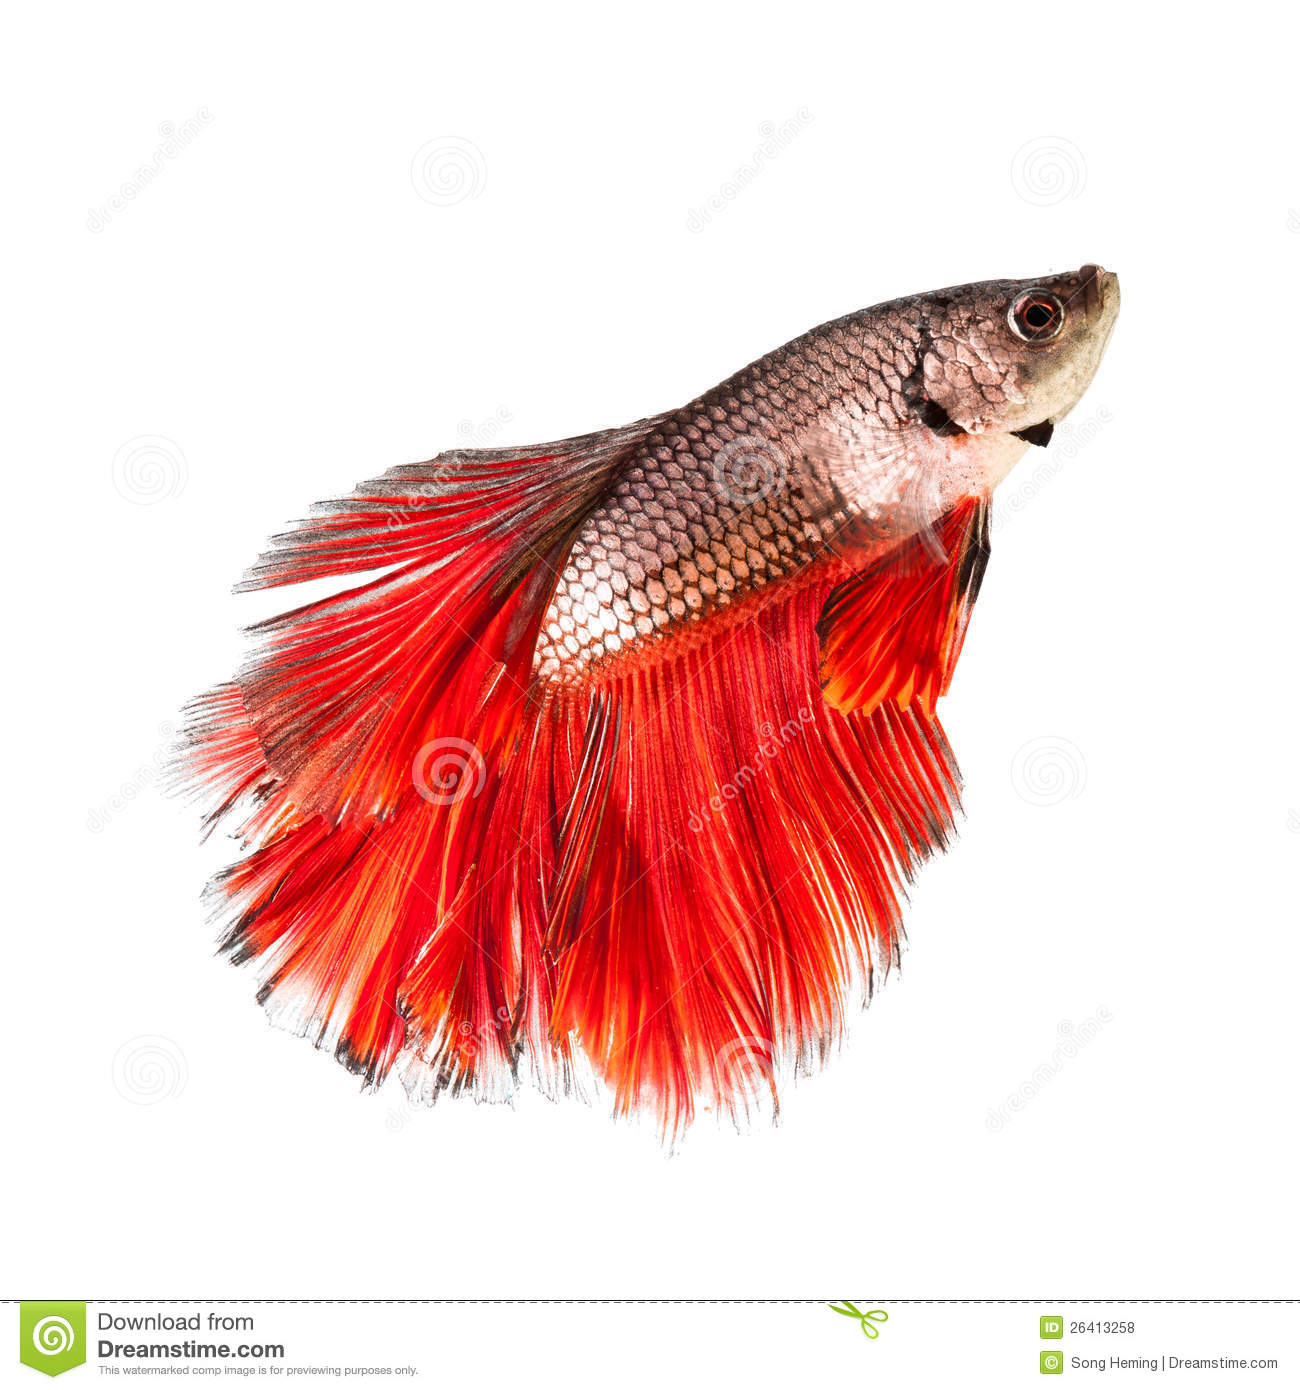 Betta Fish Siamese Fighting Red Tail Stock Photos - 2,768 Images